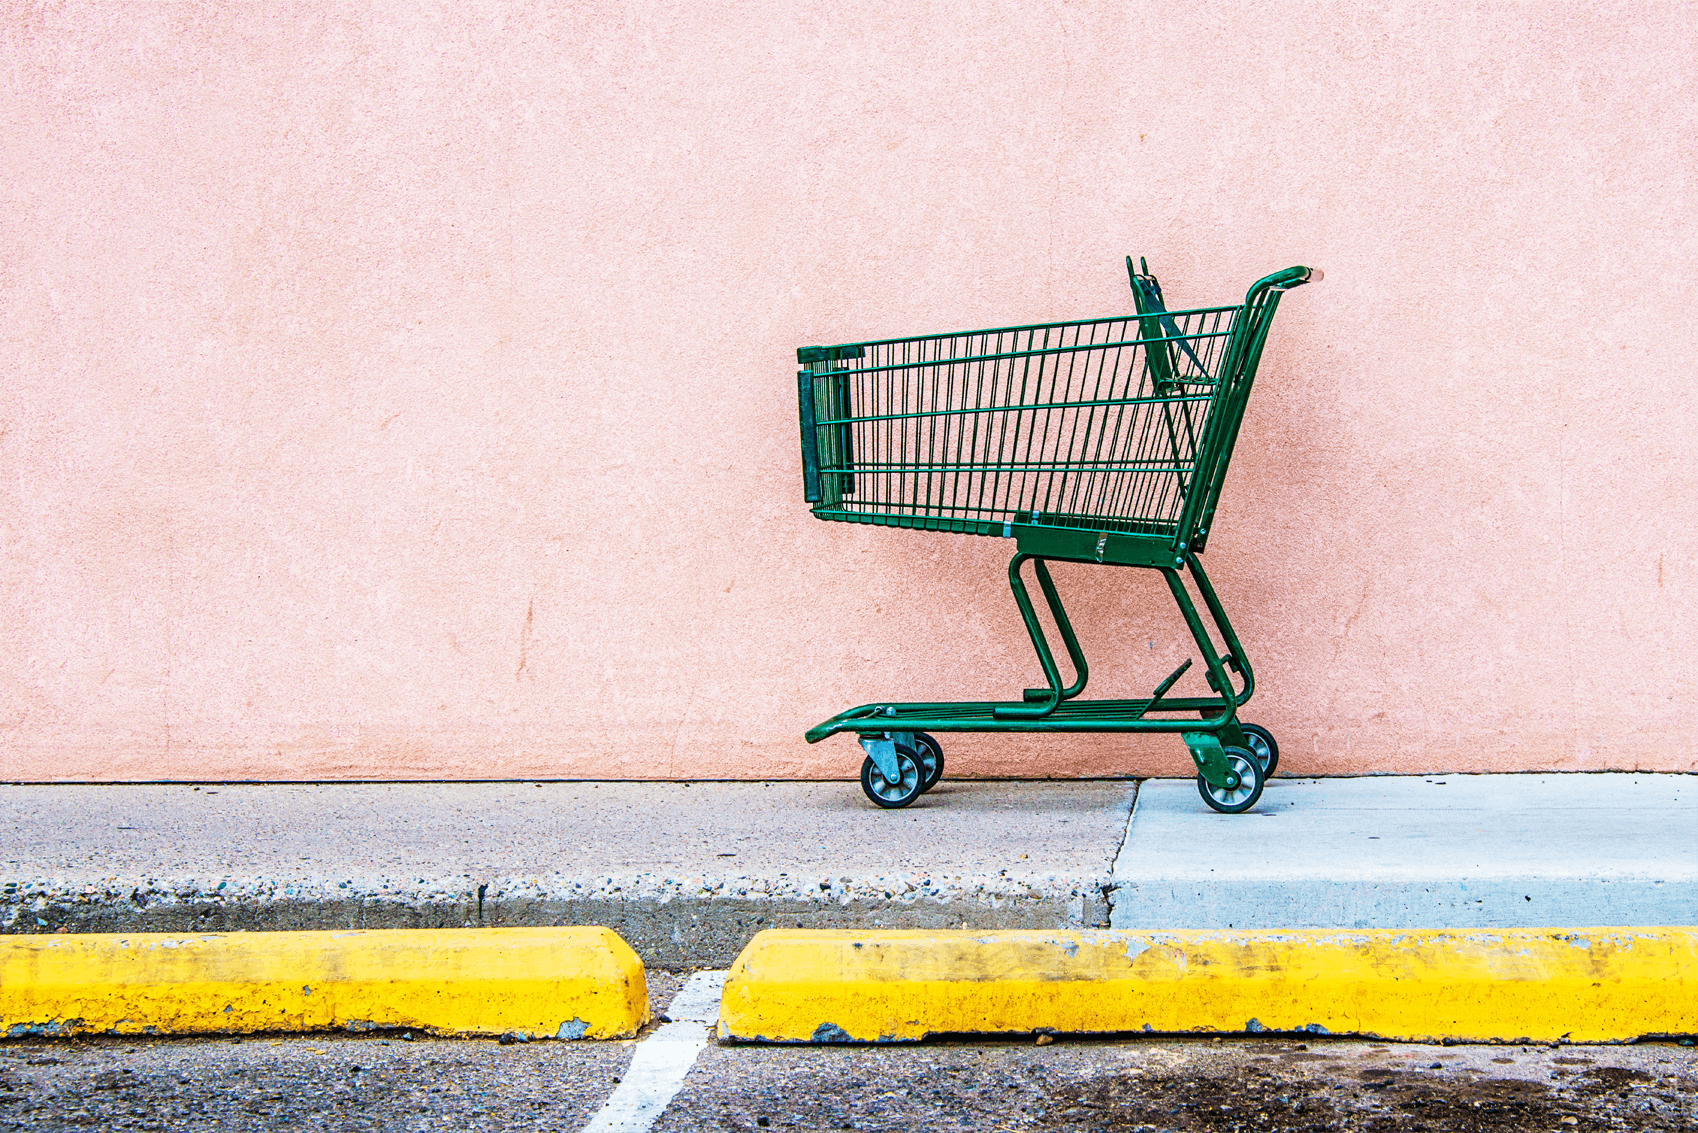 Shopping trolley behind a yellow curb